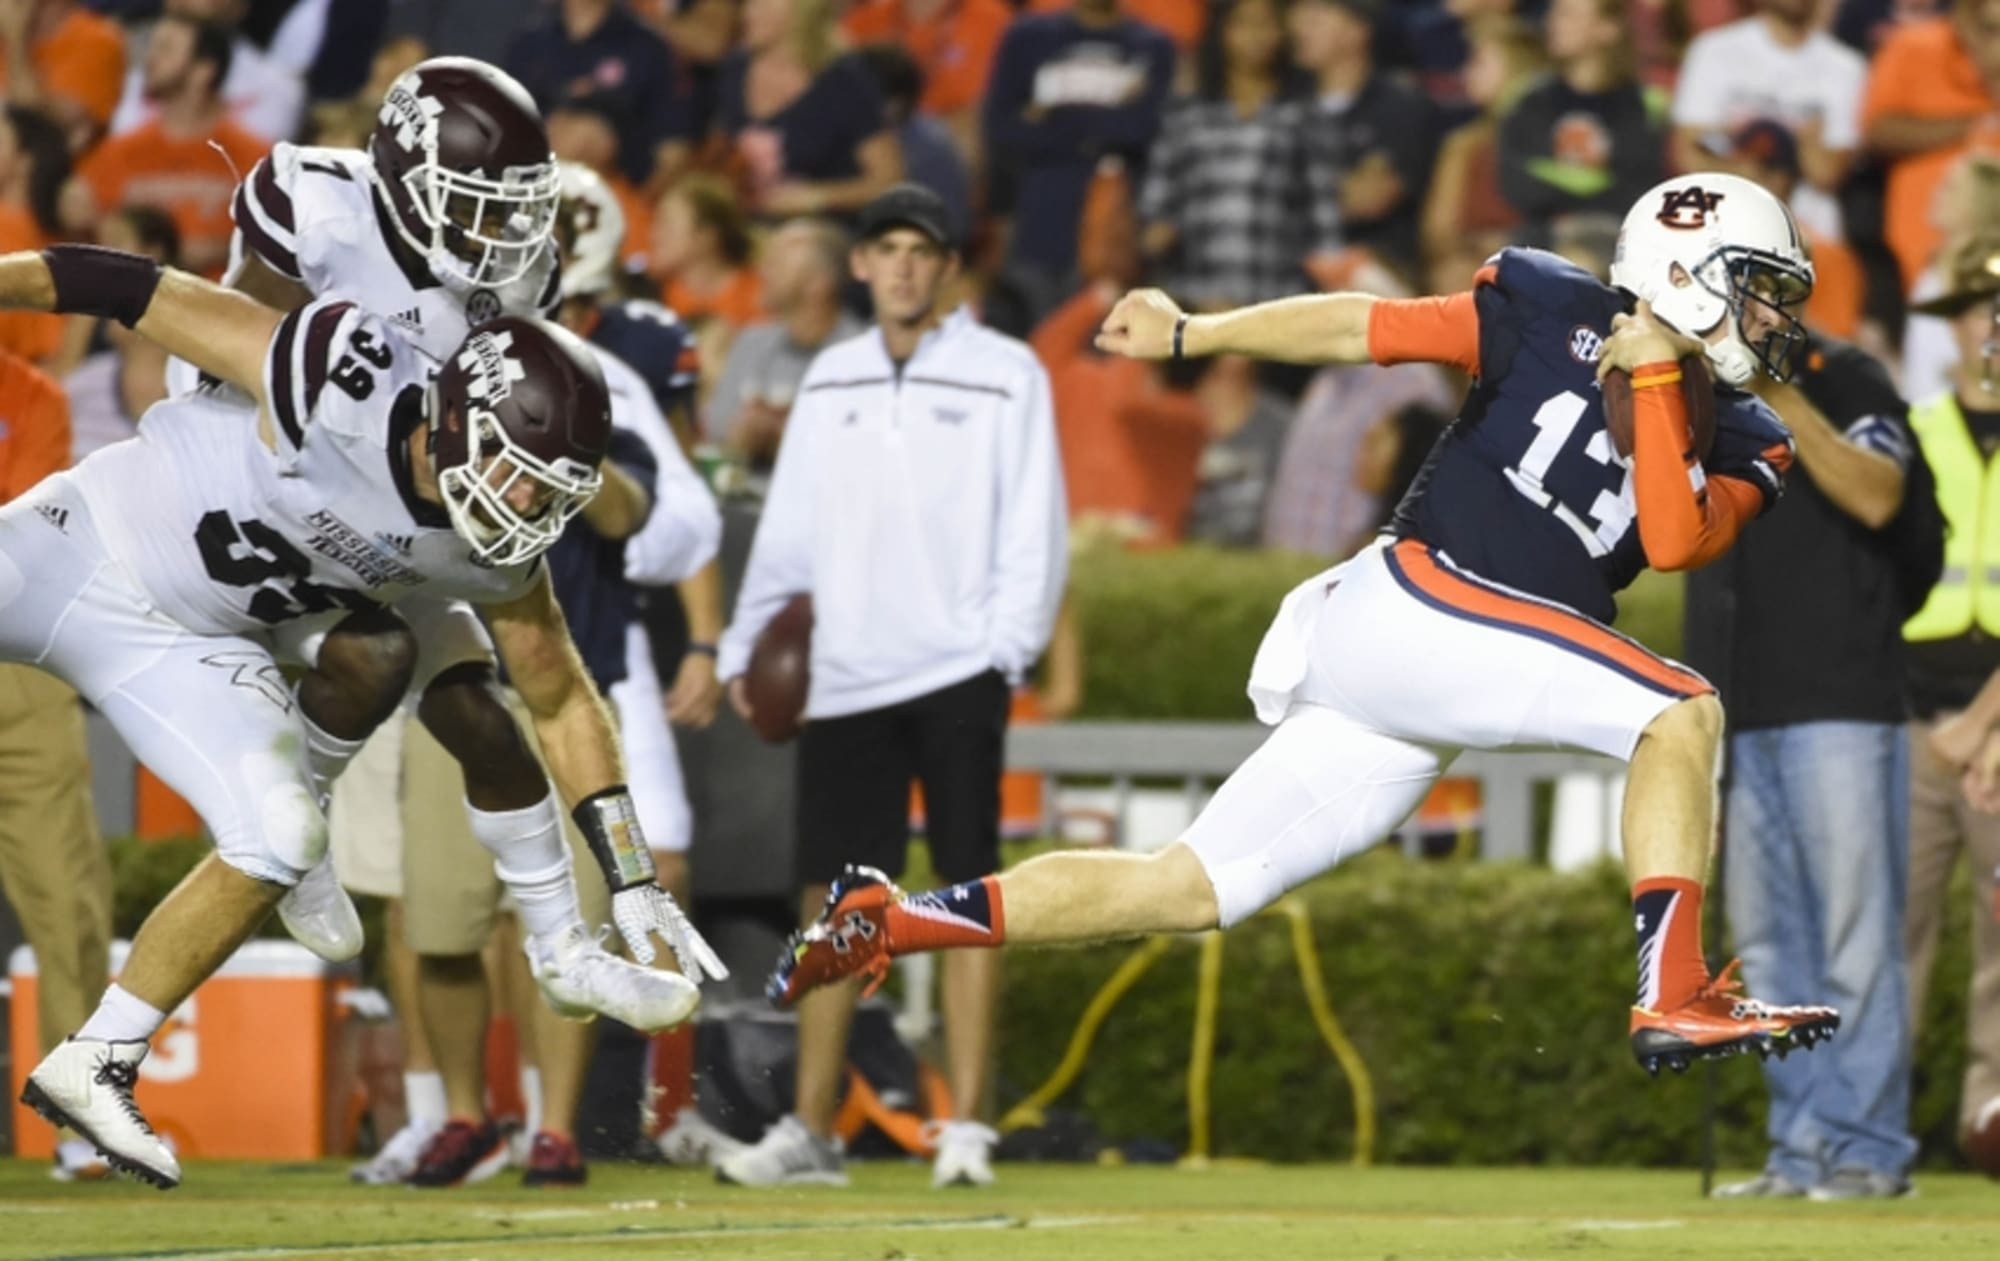 Auburn Football vs. Mississippi State: Matchup and Prediction